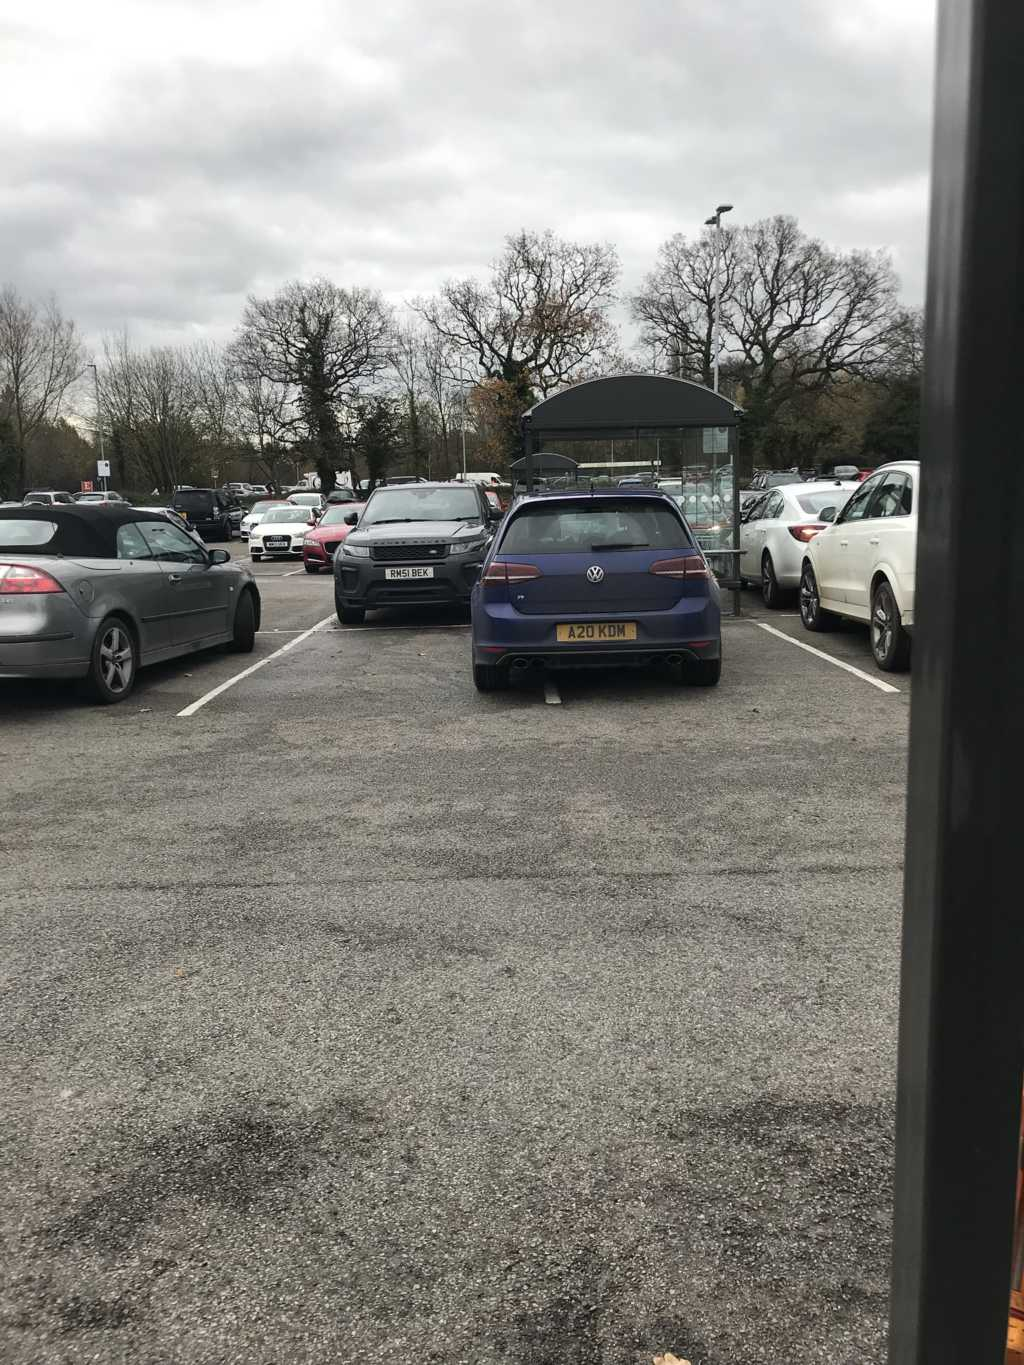 A20 KDM displaying Inconsiderate Parking